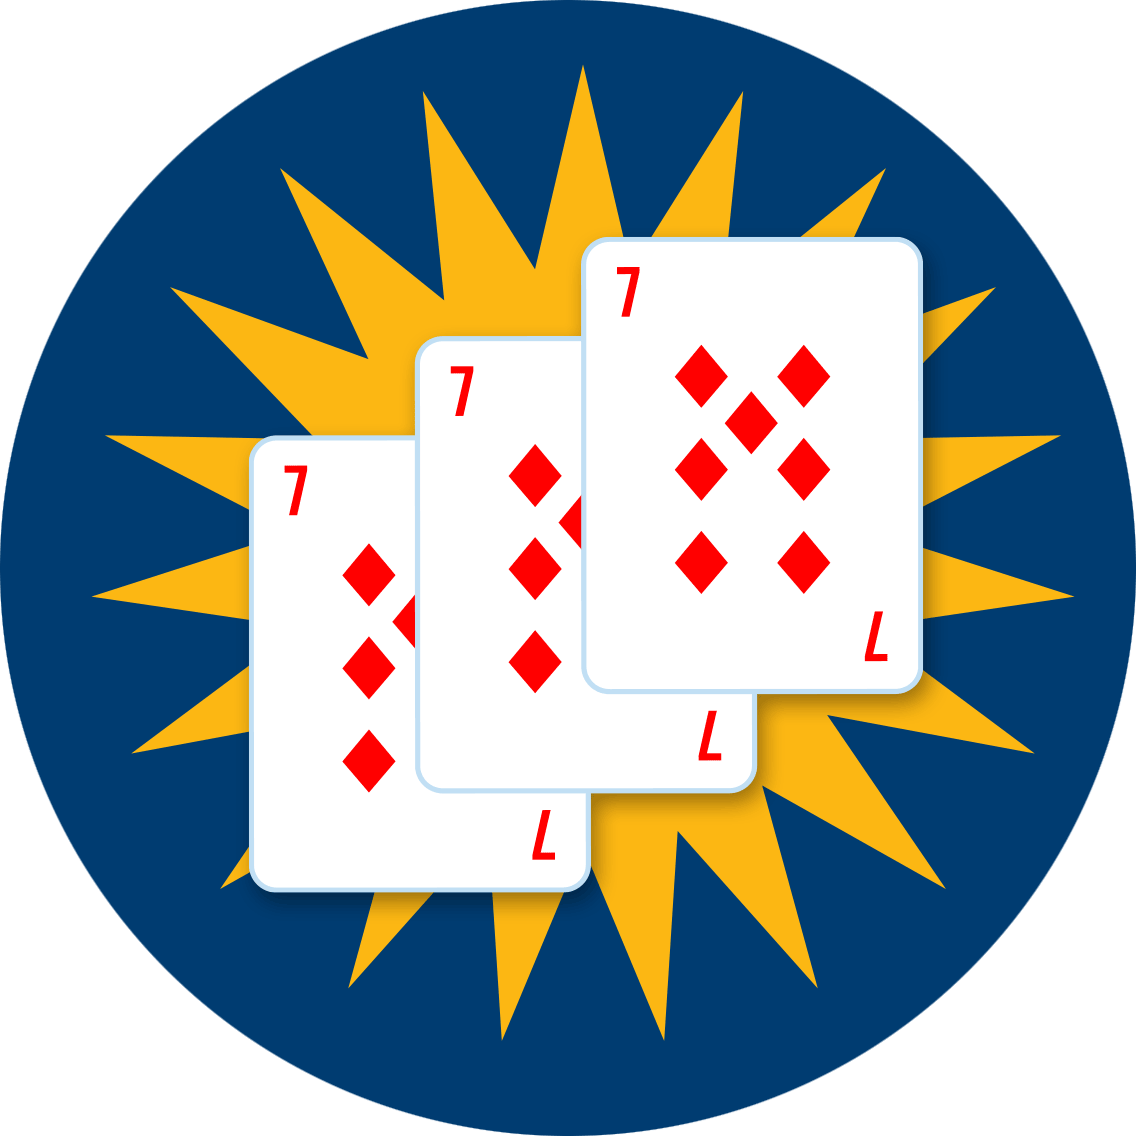 Three suited 7 of diamonds with a star-shape bonus behind it.